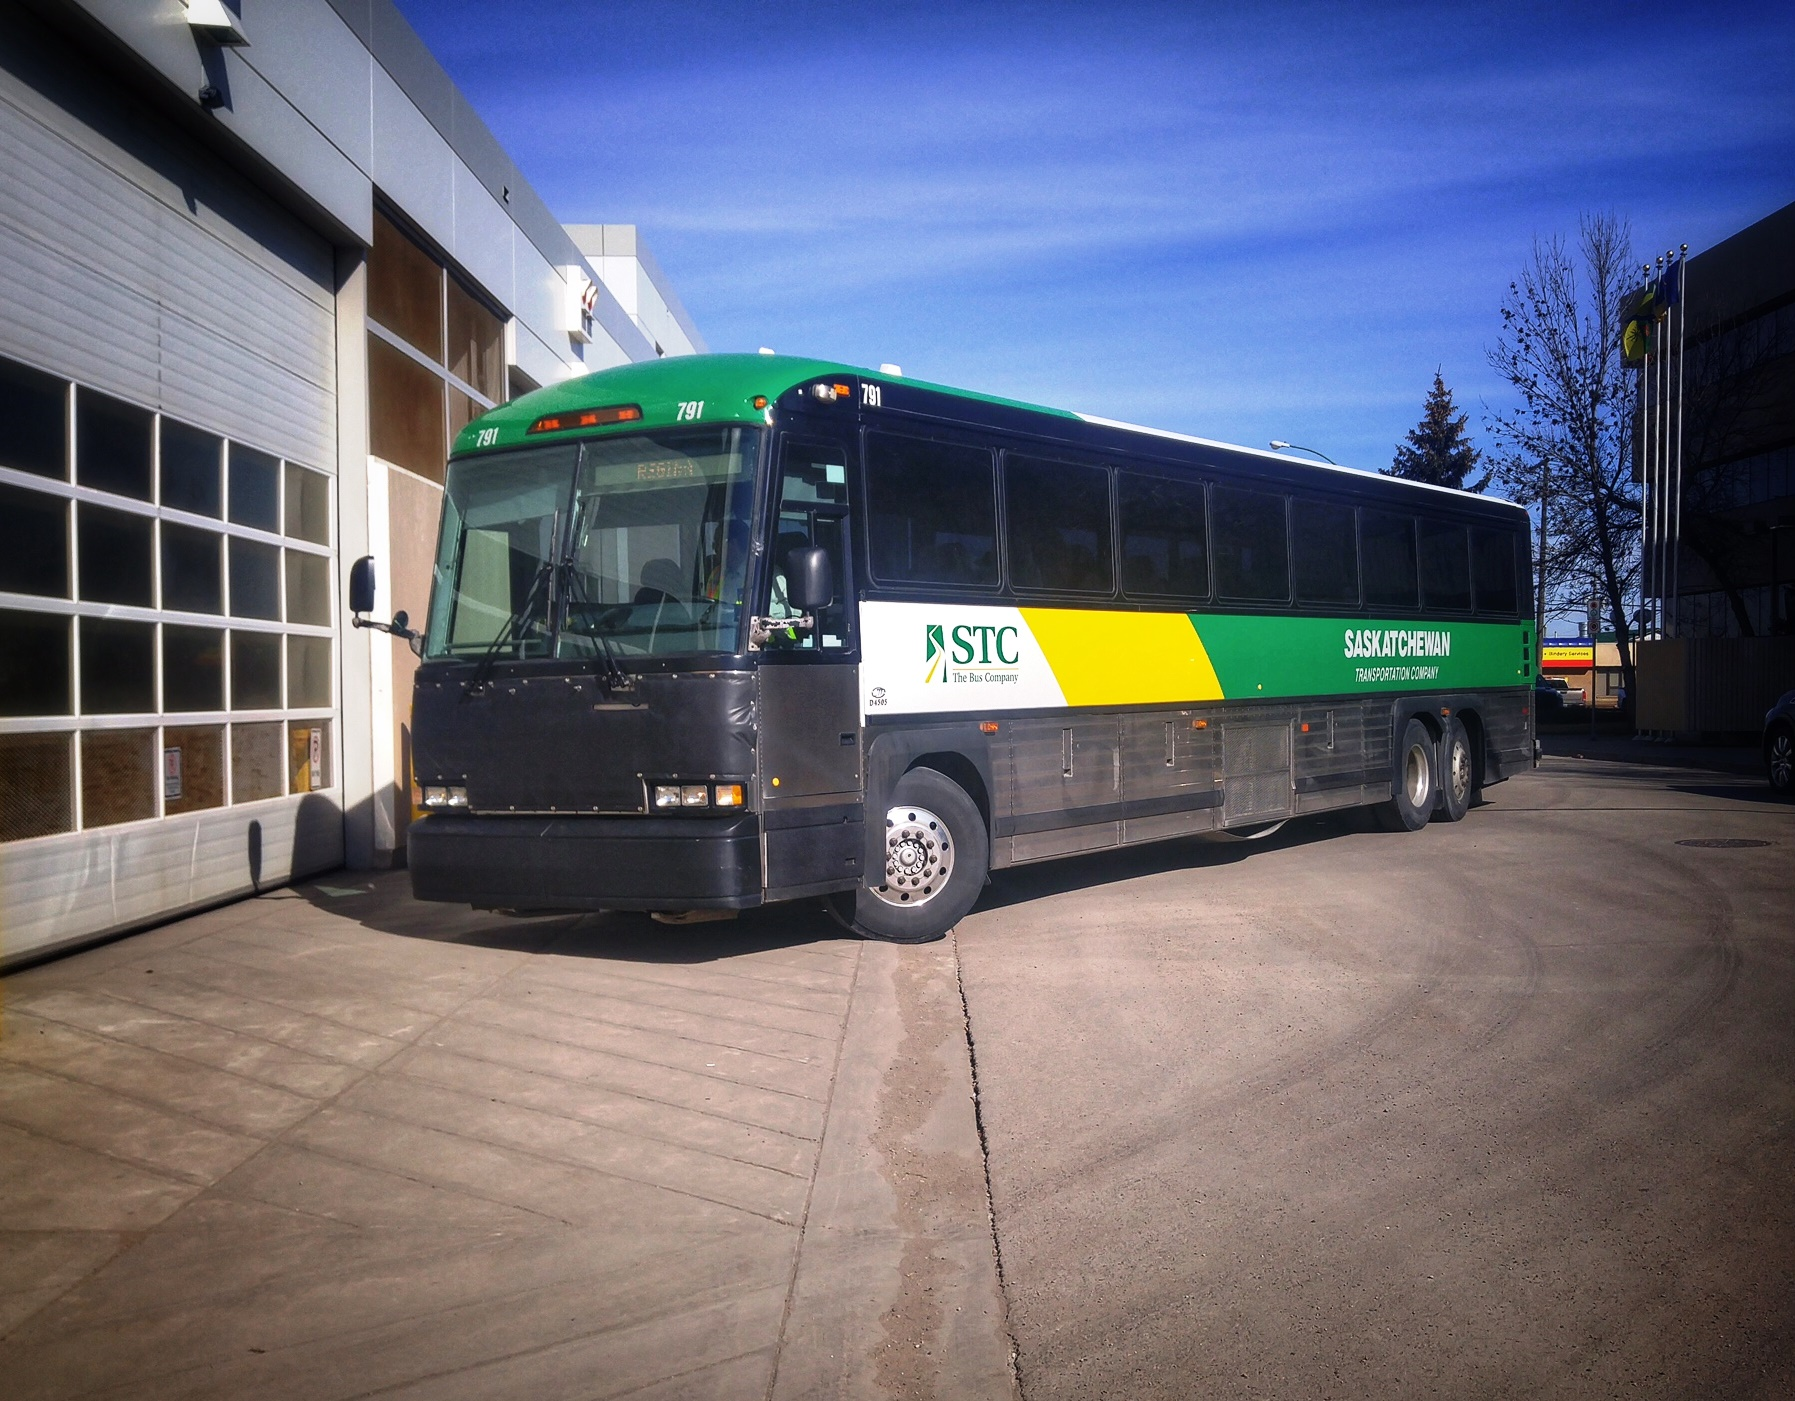 Public hearings to begin for those seeking STC routes